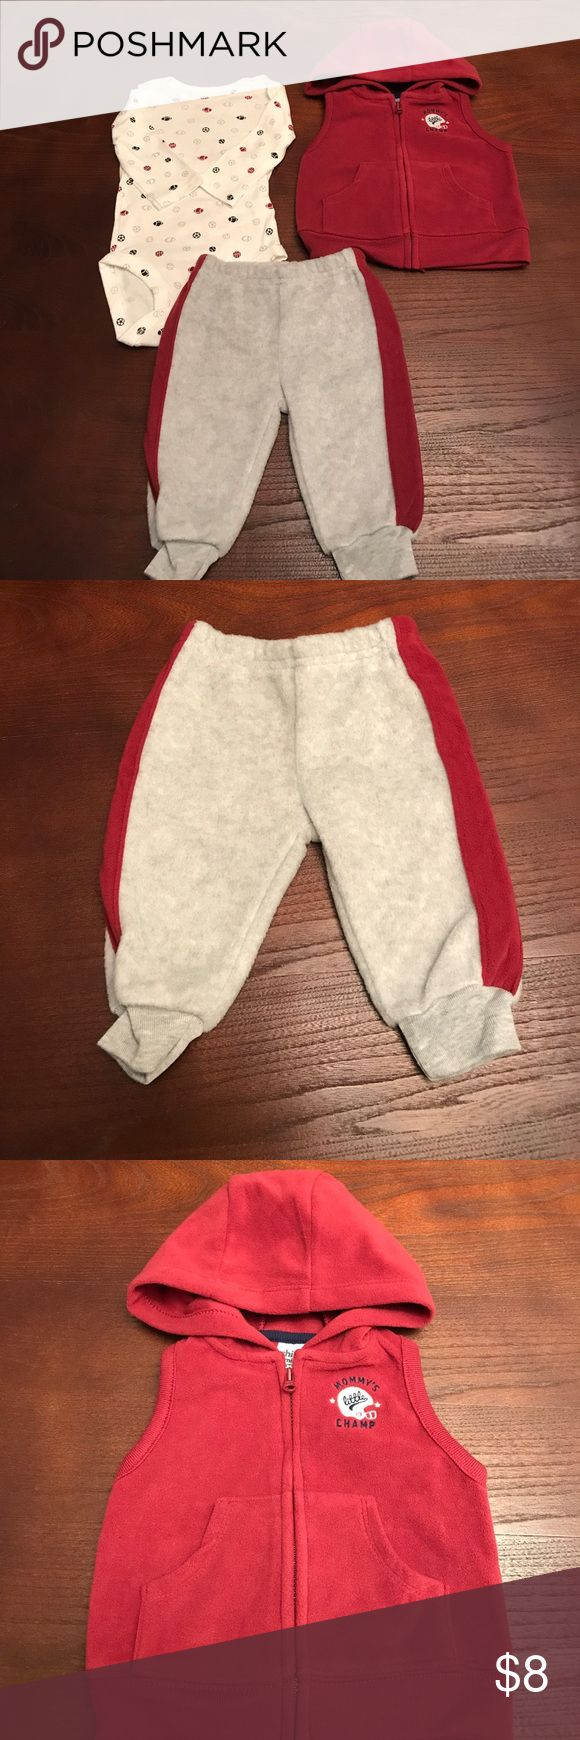 New 3 piece set for boys New three piece set for boys. Sports themed outfit. The shirt has 2 parallel faint burgundy lines in the front of the shirt. The lines came from the zipper. ( my son was born premature and there are items he did not use. If you have any questions, let me know) Matching Sets